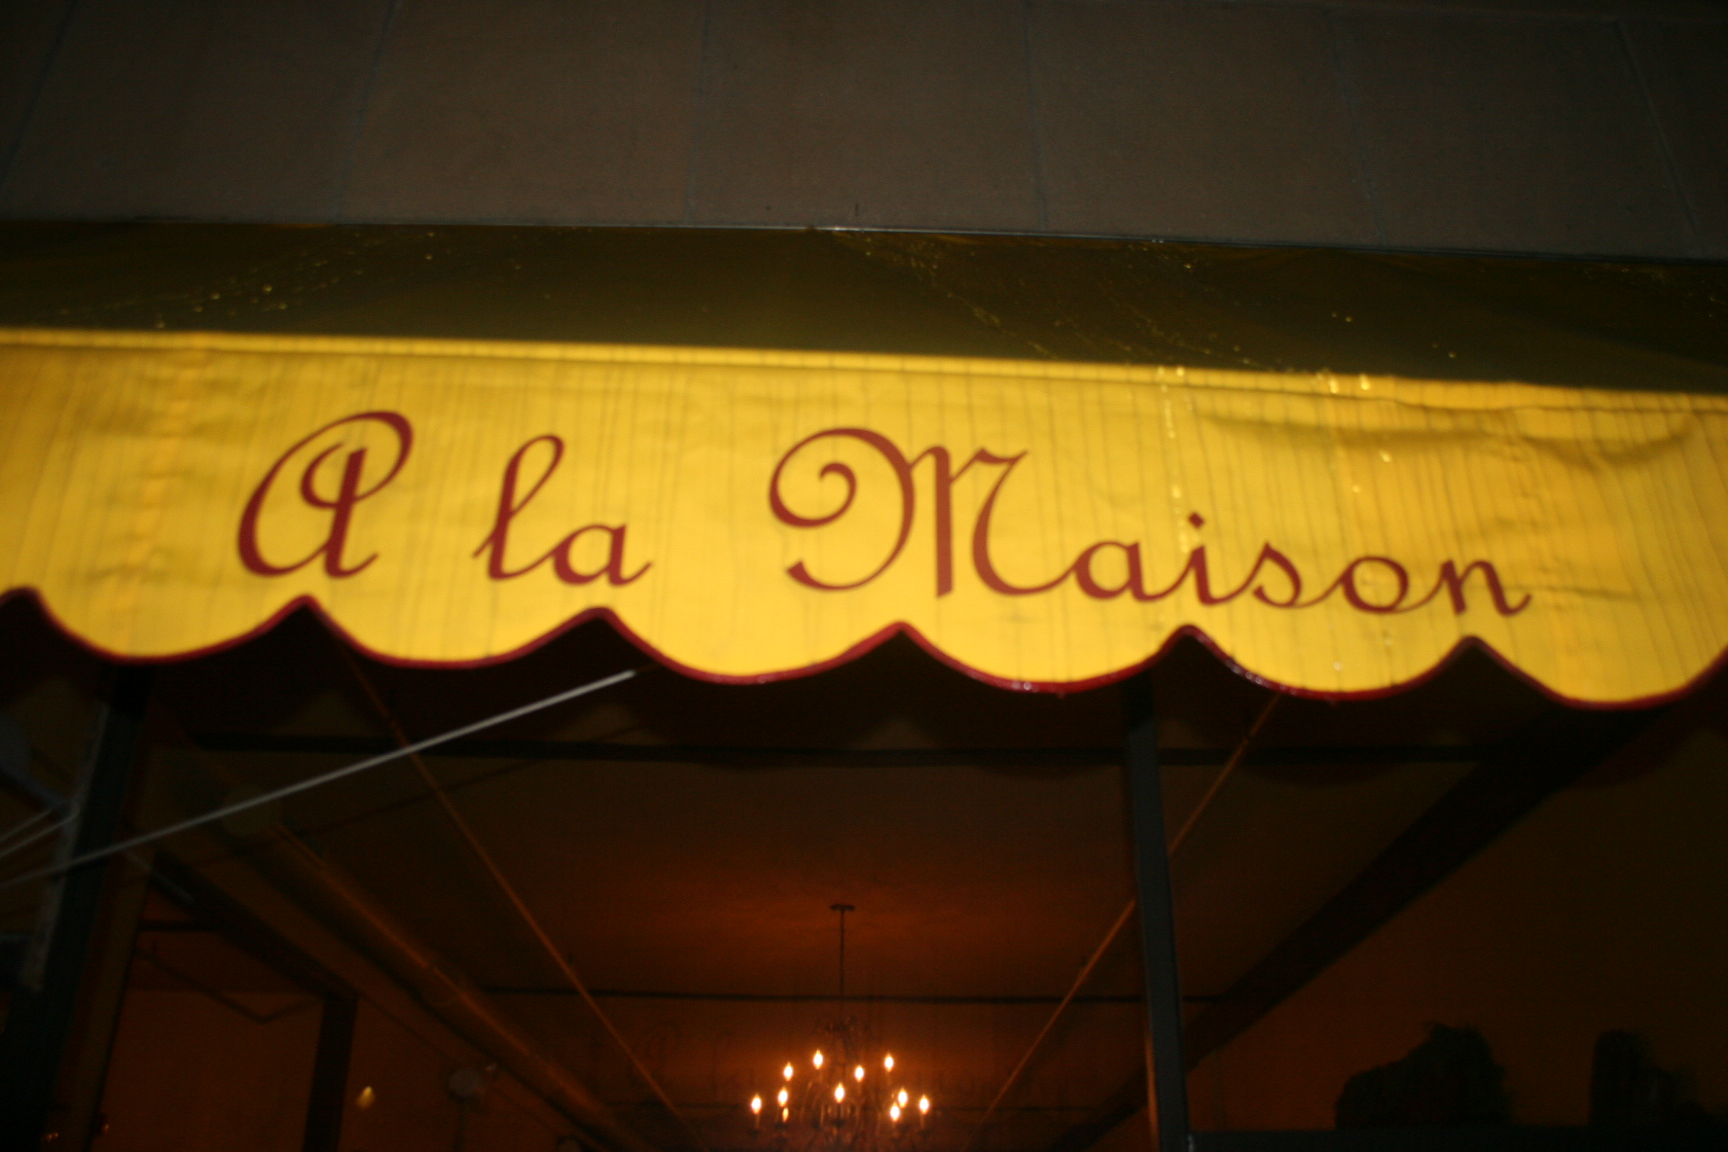 A la maison south jersey wine dine for Ala maison ardmore